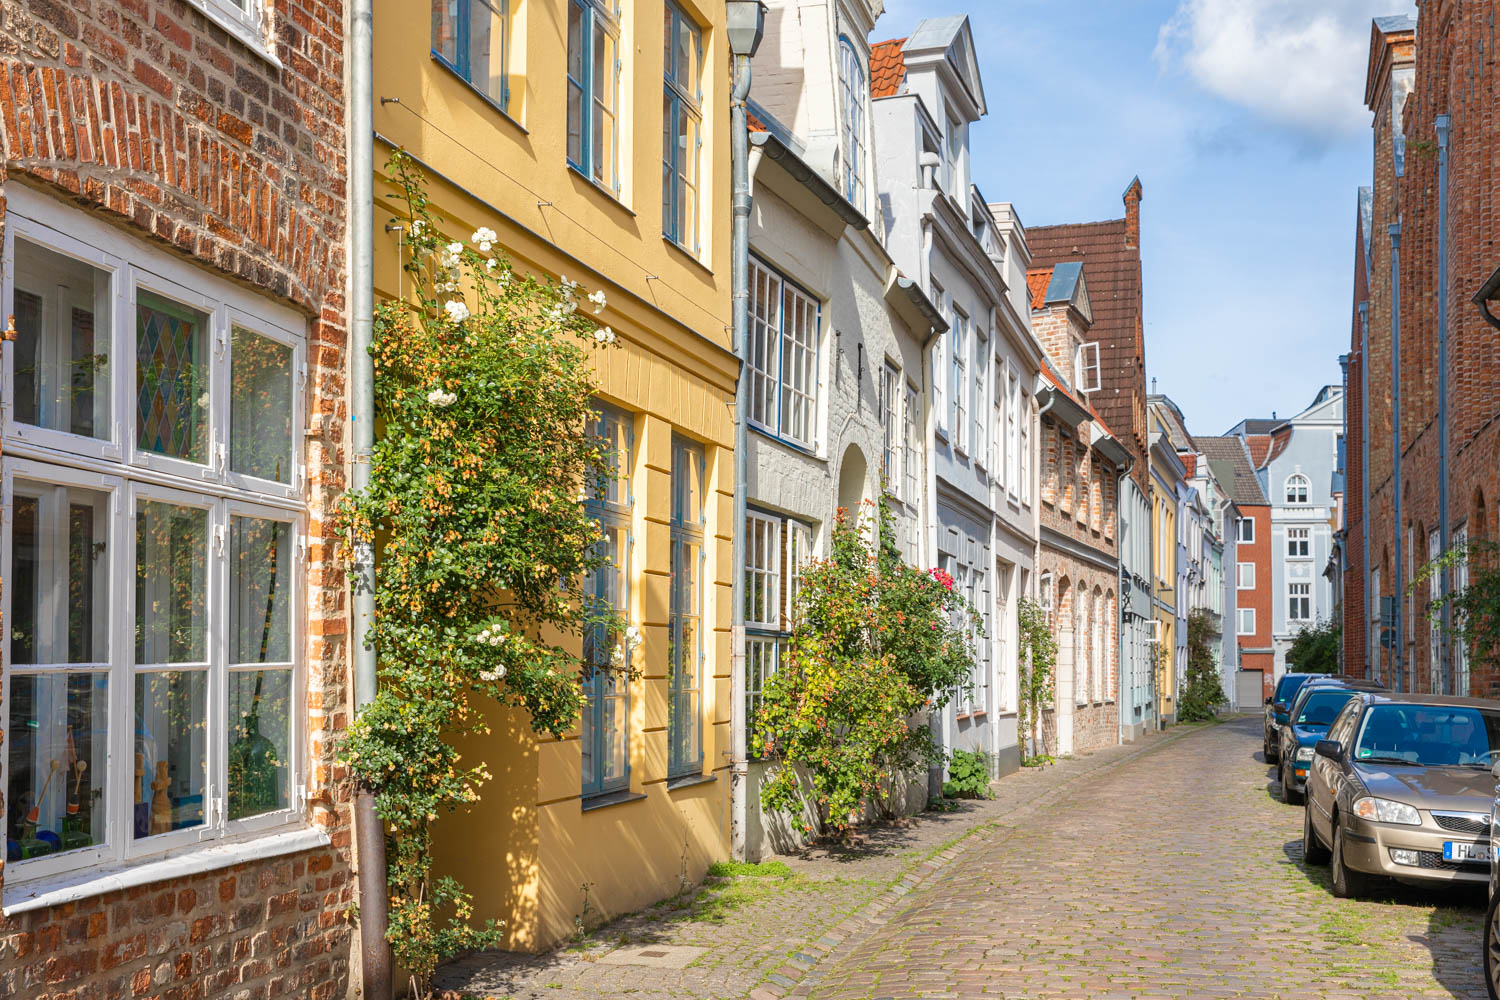 Get lost in the medieval courtyards